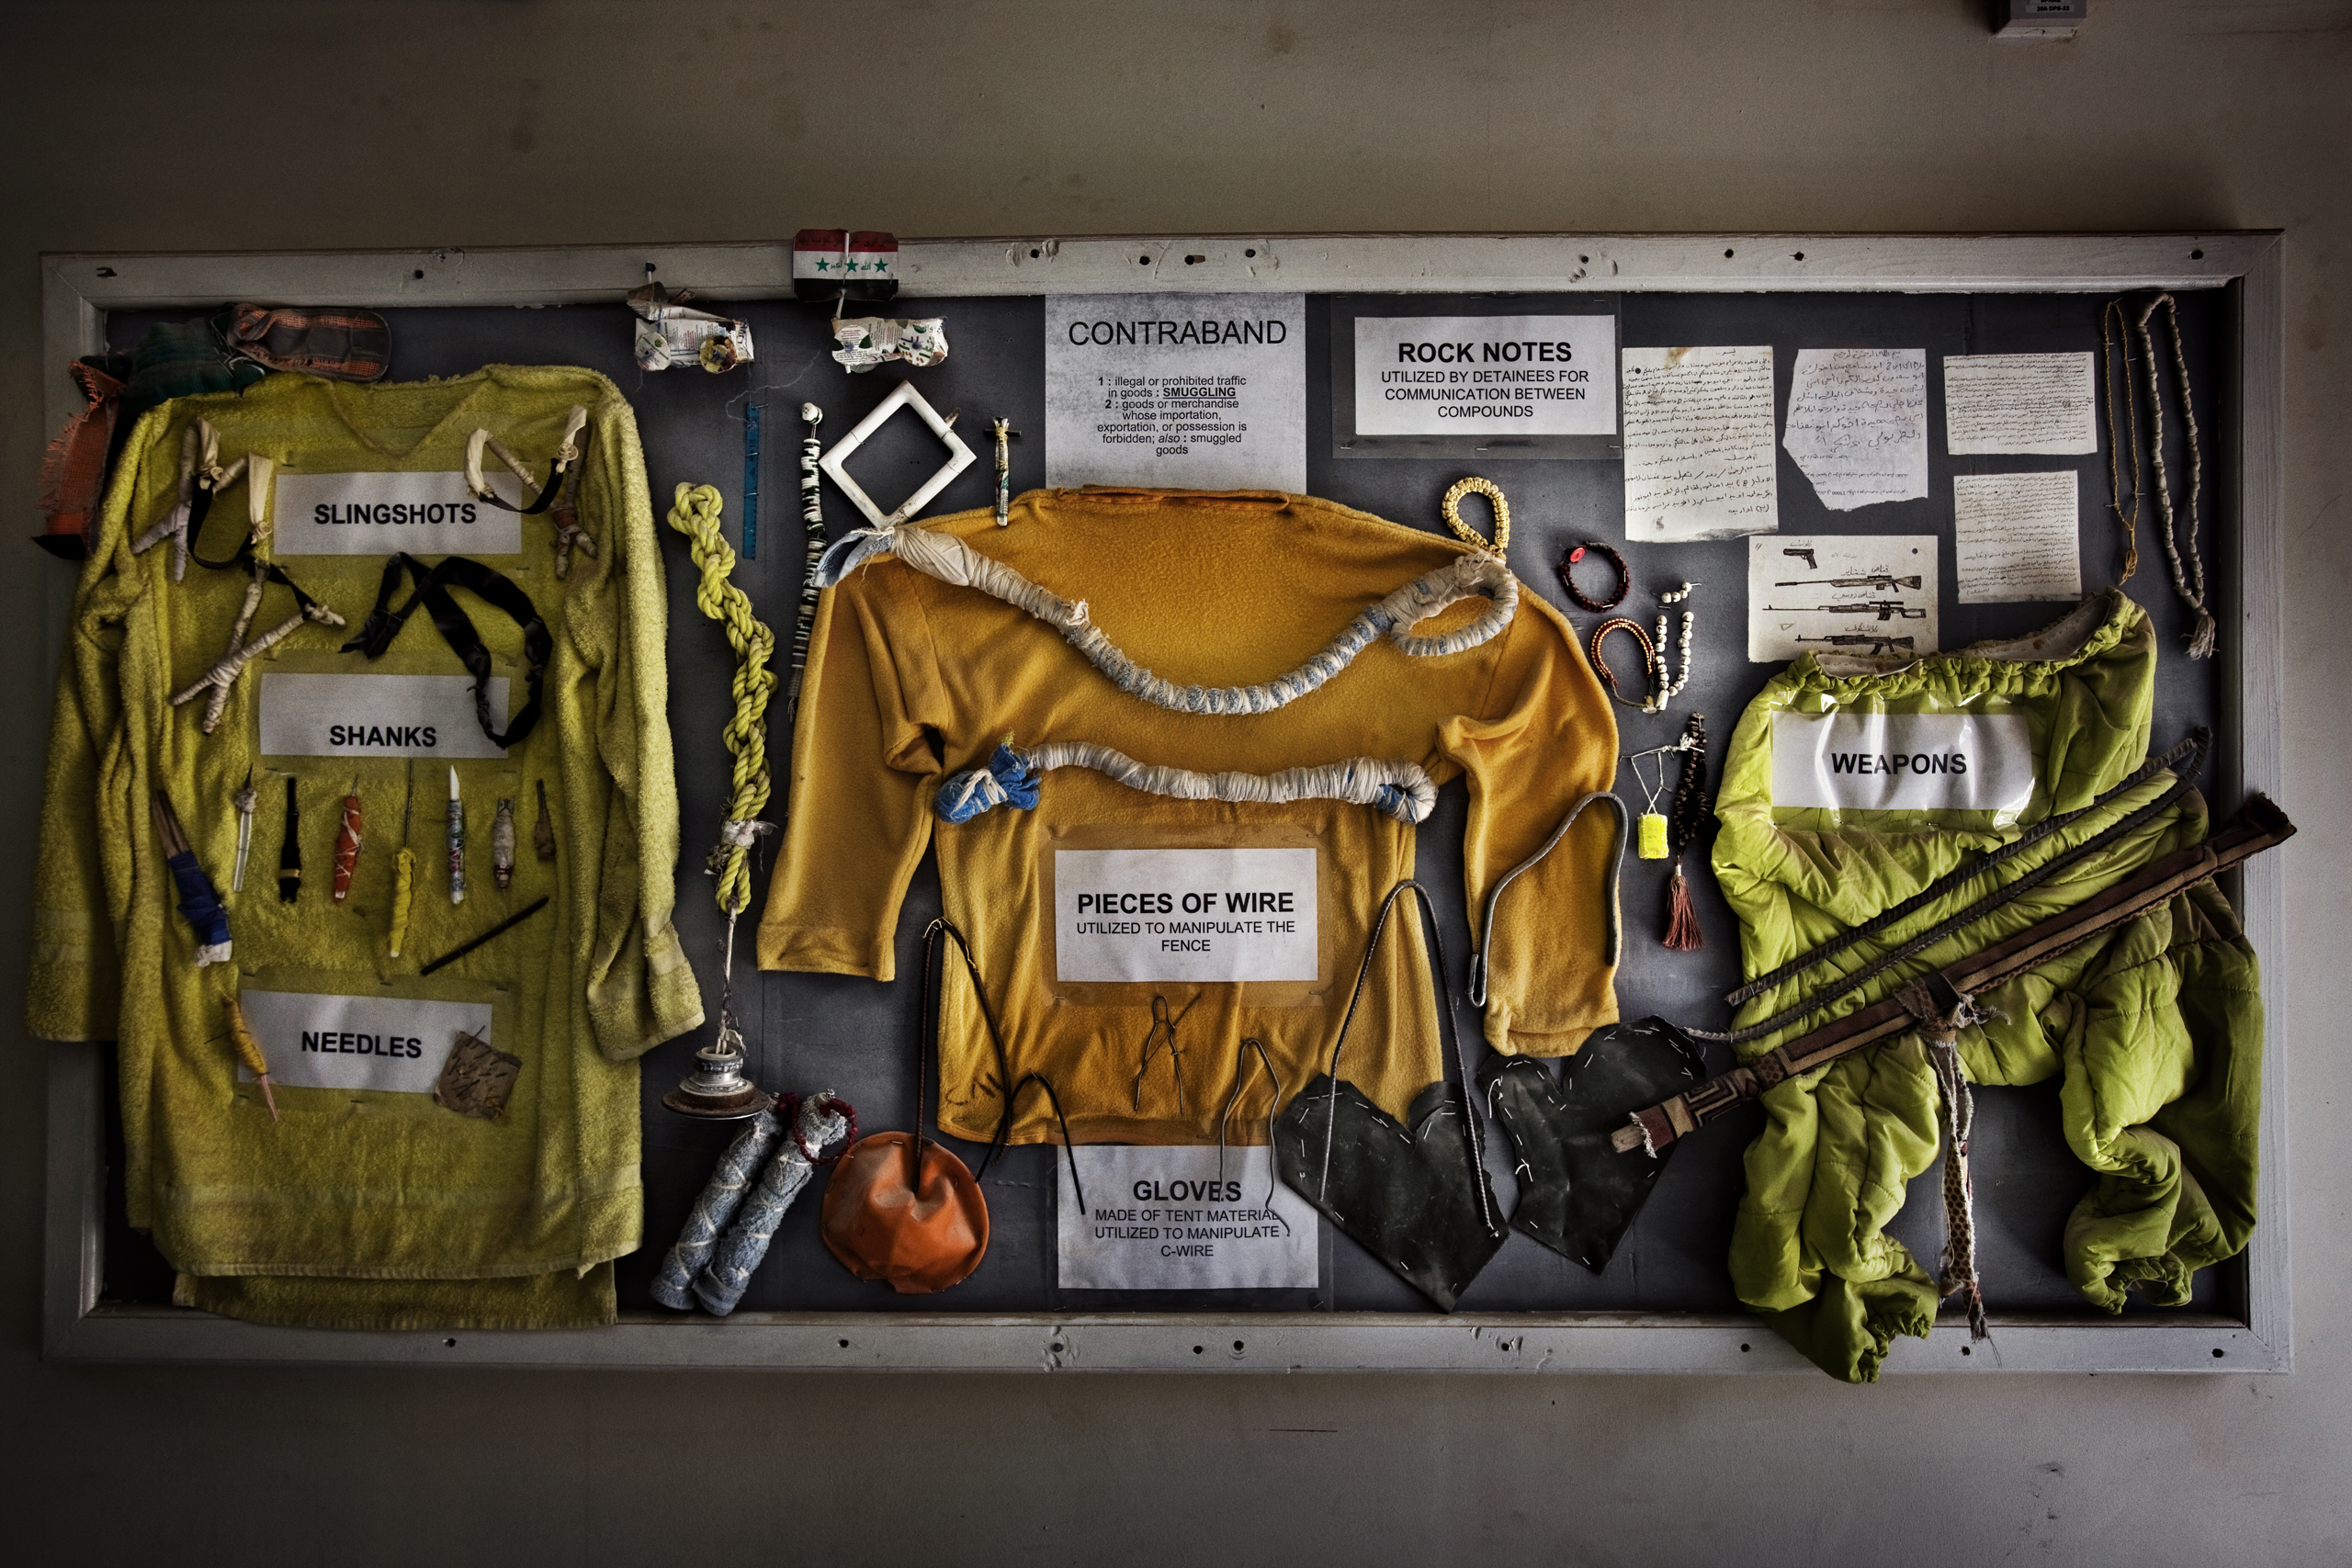 A bulletin board at Camp Cropper, the second-largest U.S. military detention facility in Iraq, displaying makeshift weapons and other contraband confiscated from the Iraqi detainees, Baghdad, Iraq, July 26, 2008.